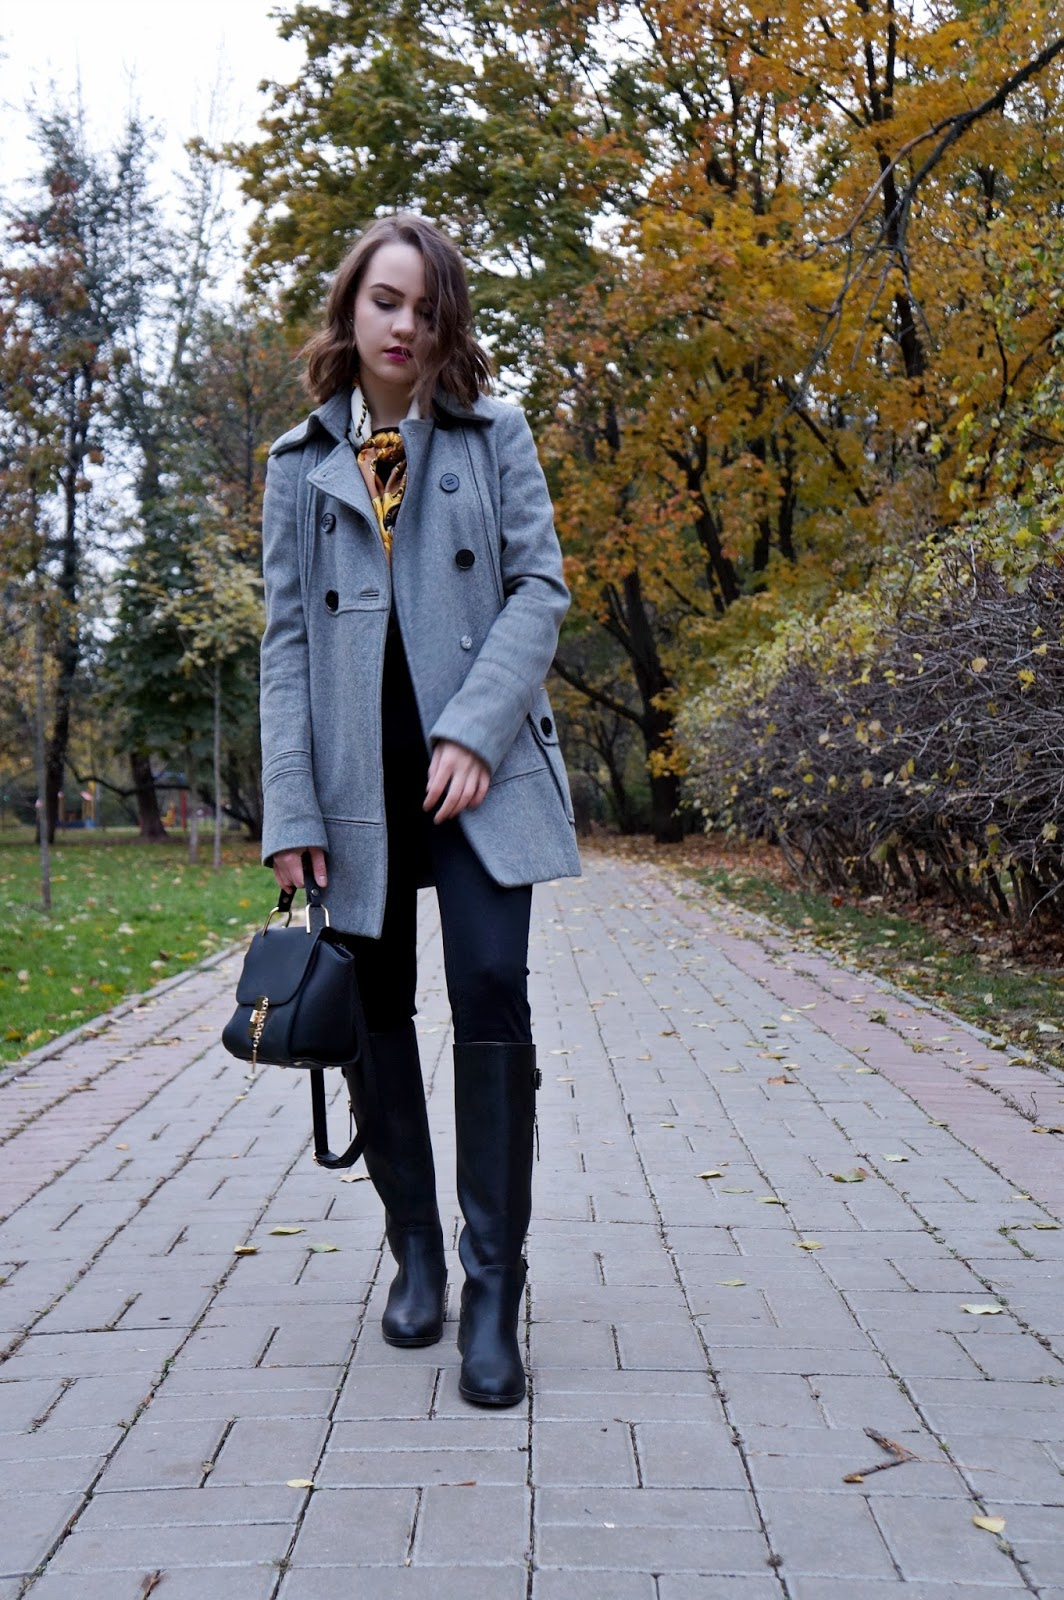 Grey coat | Fashion blogger | Alina Ermilova | Winter fashion